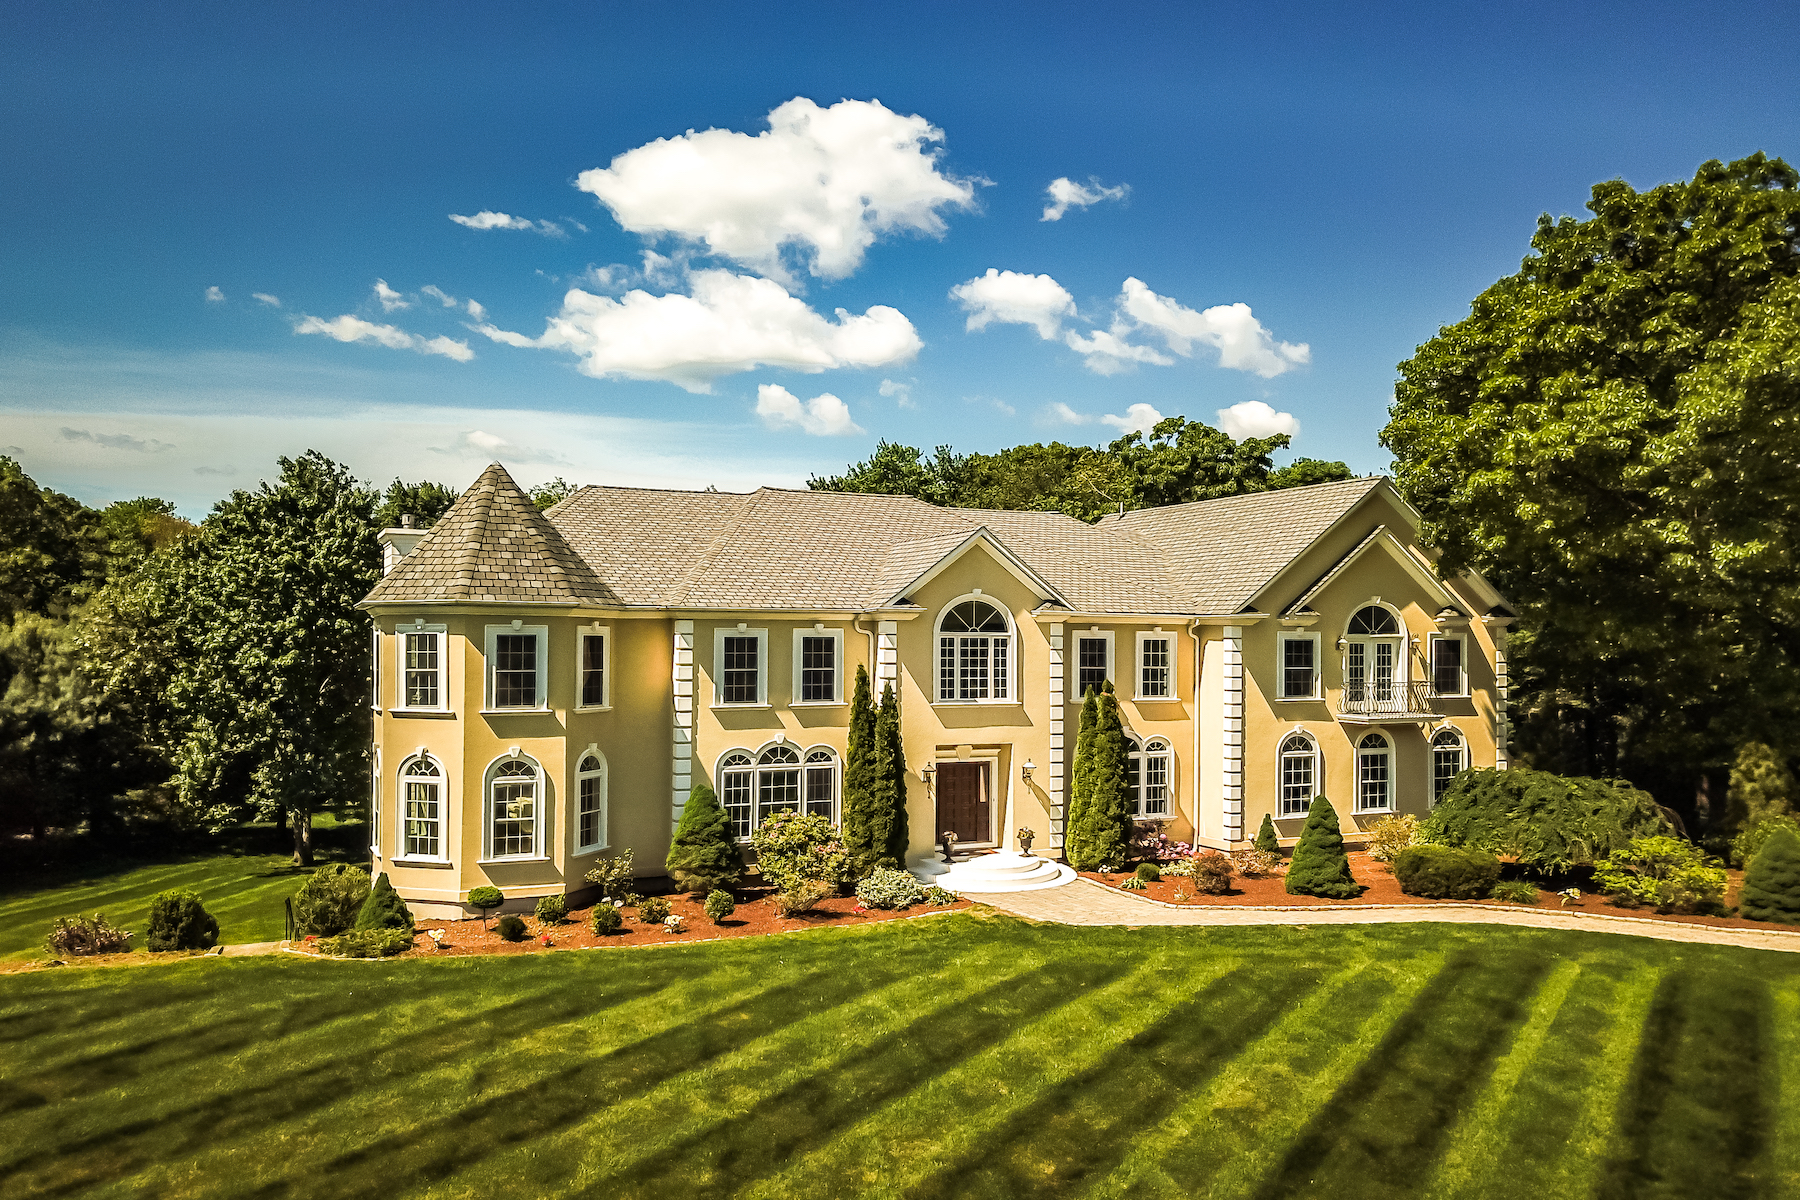 Single Family Homes for Active at 14 Arrowhead Lane Westborough, Massachusetts 01581 United States